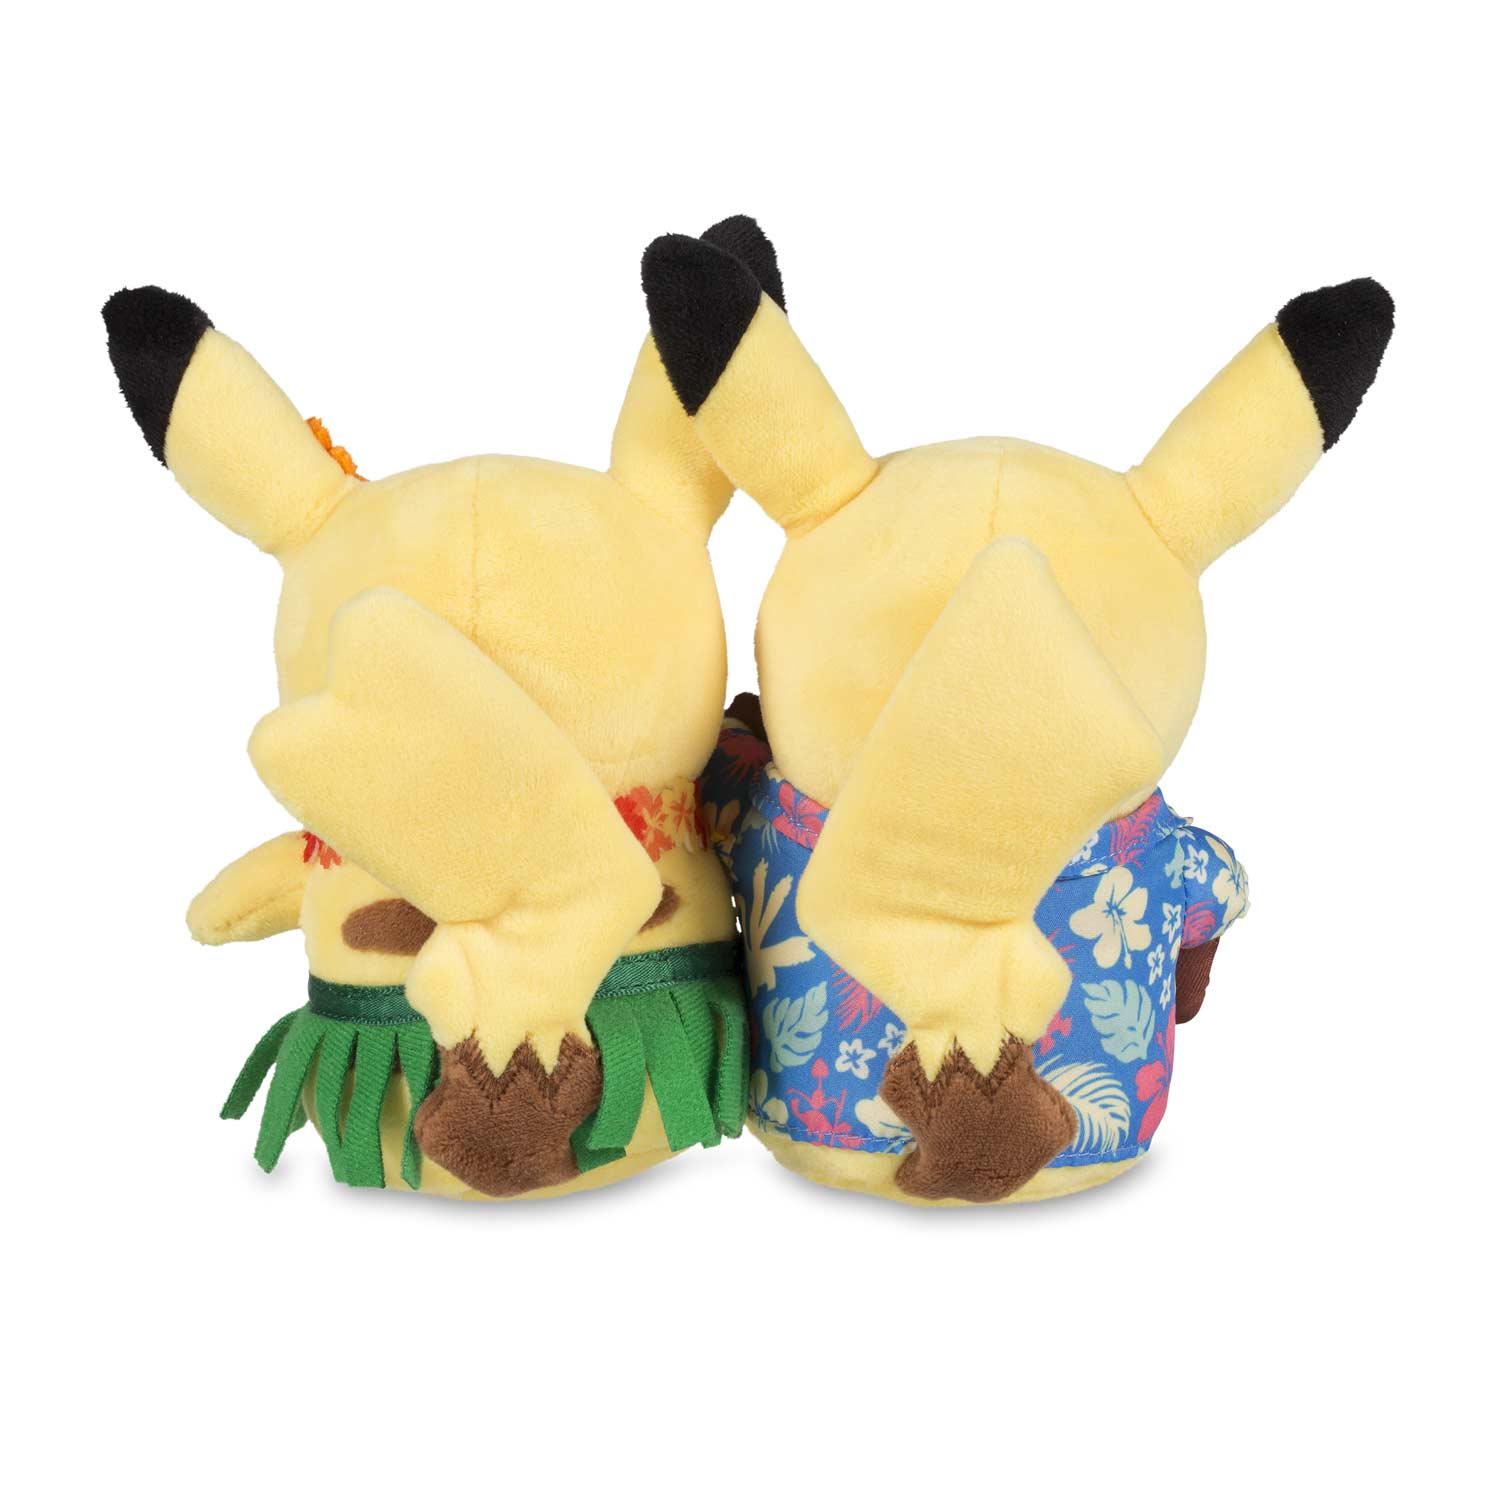 e2f6fbd6 ... for Paired Pikachu Celebrations: Hawaiian Pikachu Plush - 8 In. from Pokemon  Center. _5_3074457345618259663_3074457345618262055_3074457345618268804